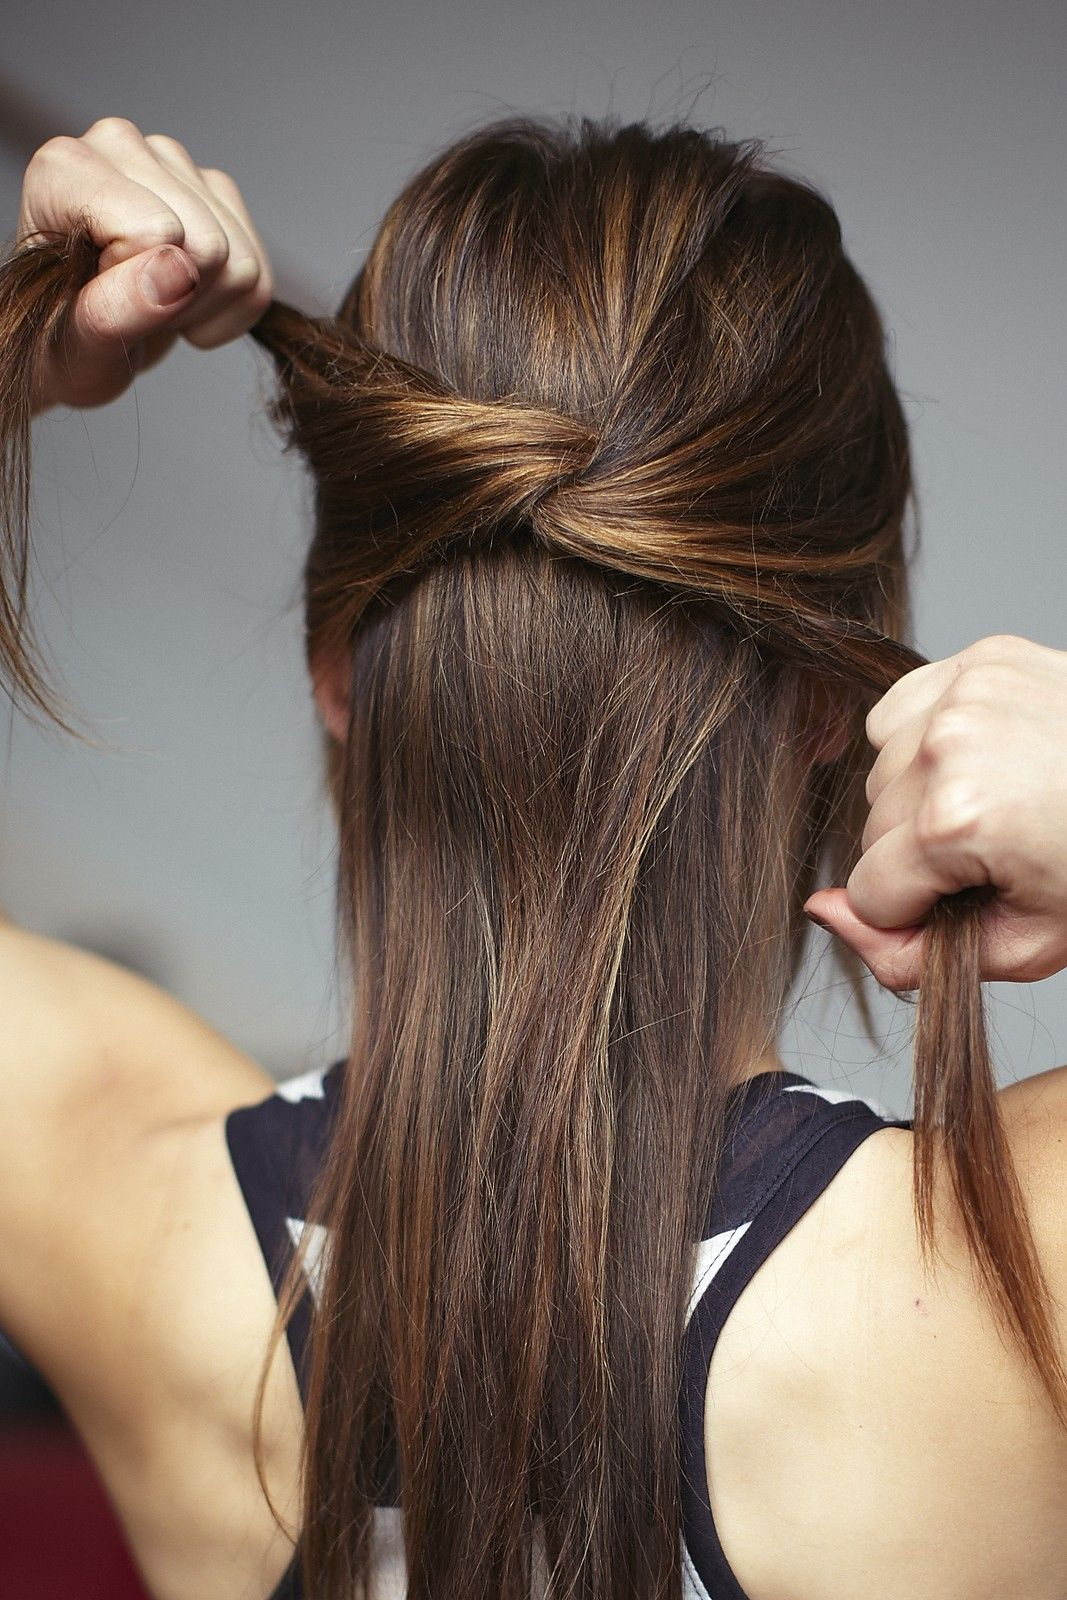 Hair knots howto guide for styling summer knot hairstyles